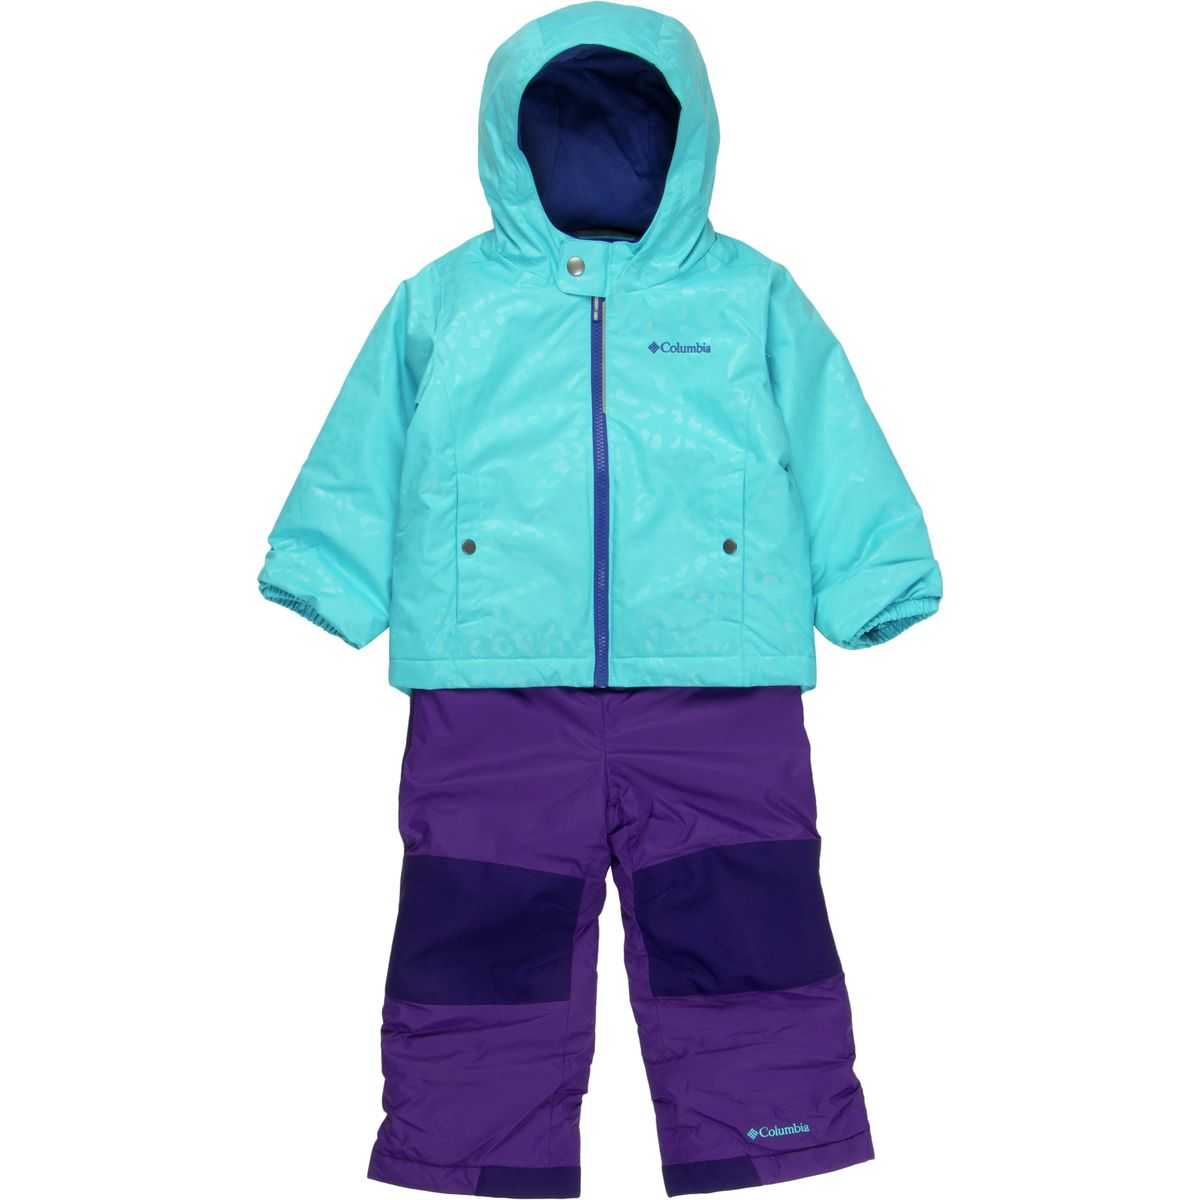 Mountain Warehouse Cloud All In 1 Kids Snowsuit - Waterproof Jumpsuit. by Mountain Warehouse. $ - $ $ 27 $ 99 Prime. FREE Shipping .